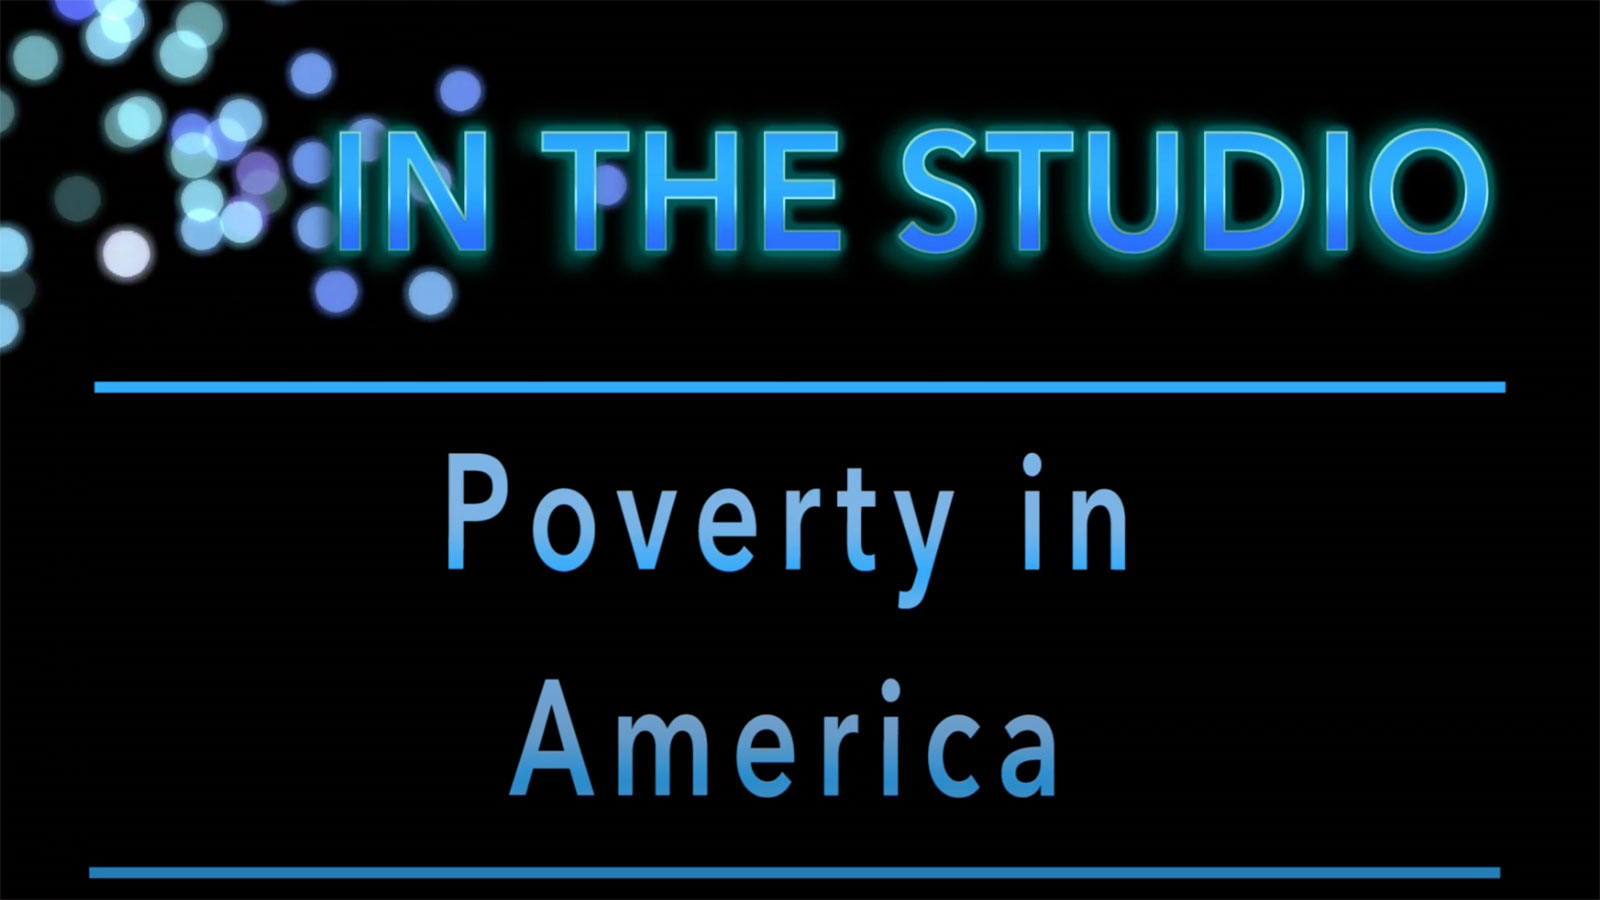 In the Studio: Poverty in America